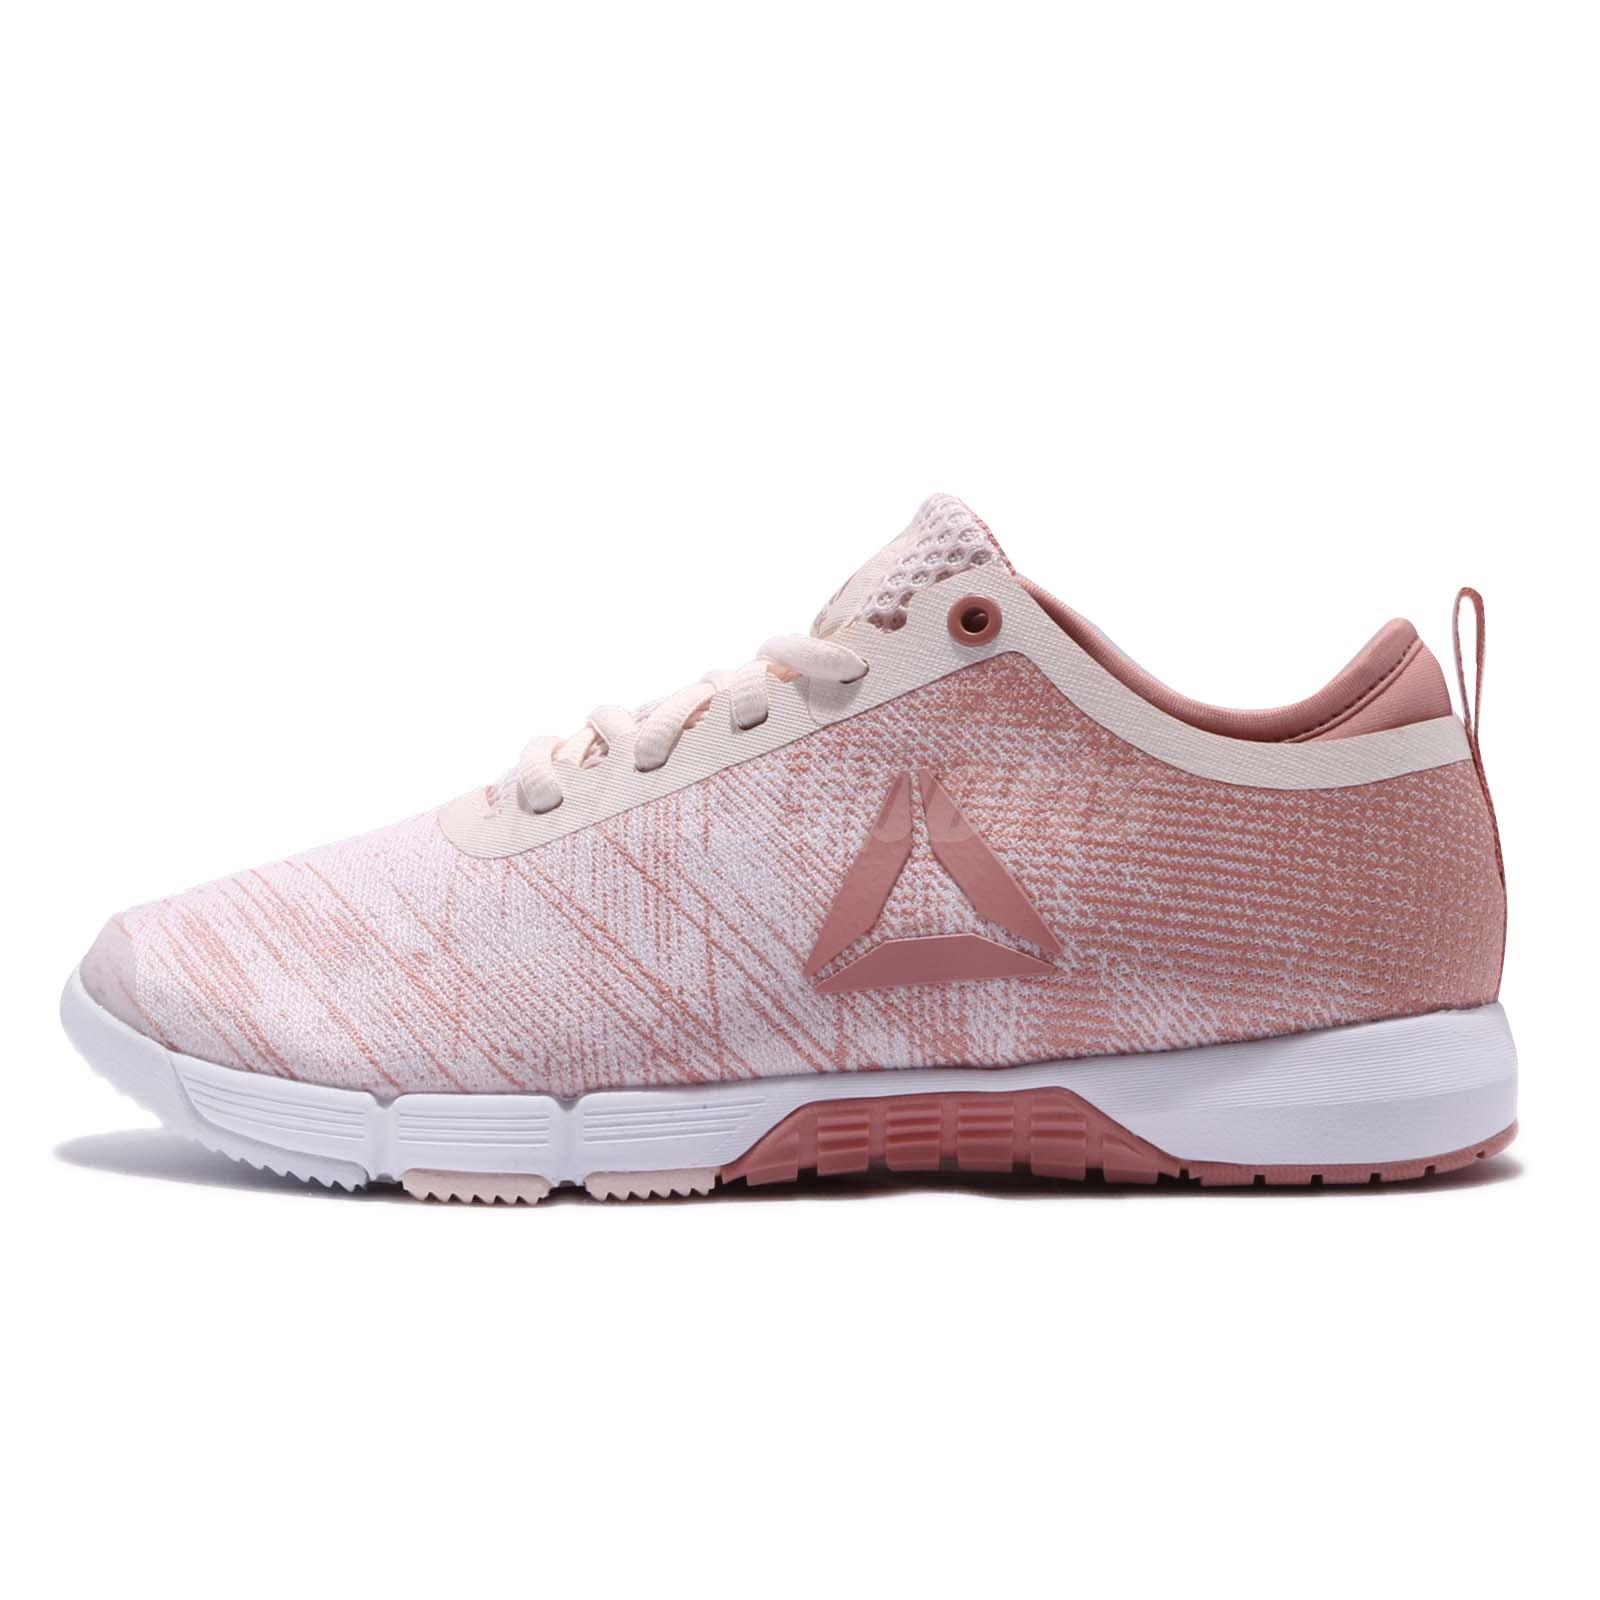 Reebok Speed Her TR Pale Pink White Women Cross Training Shoes Trainers  CN0993